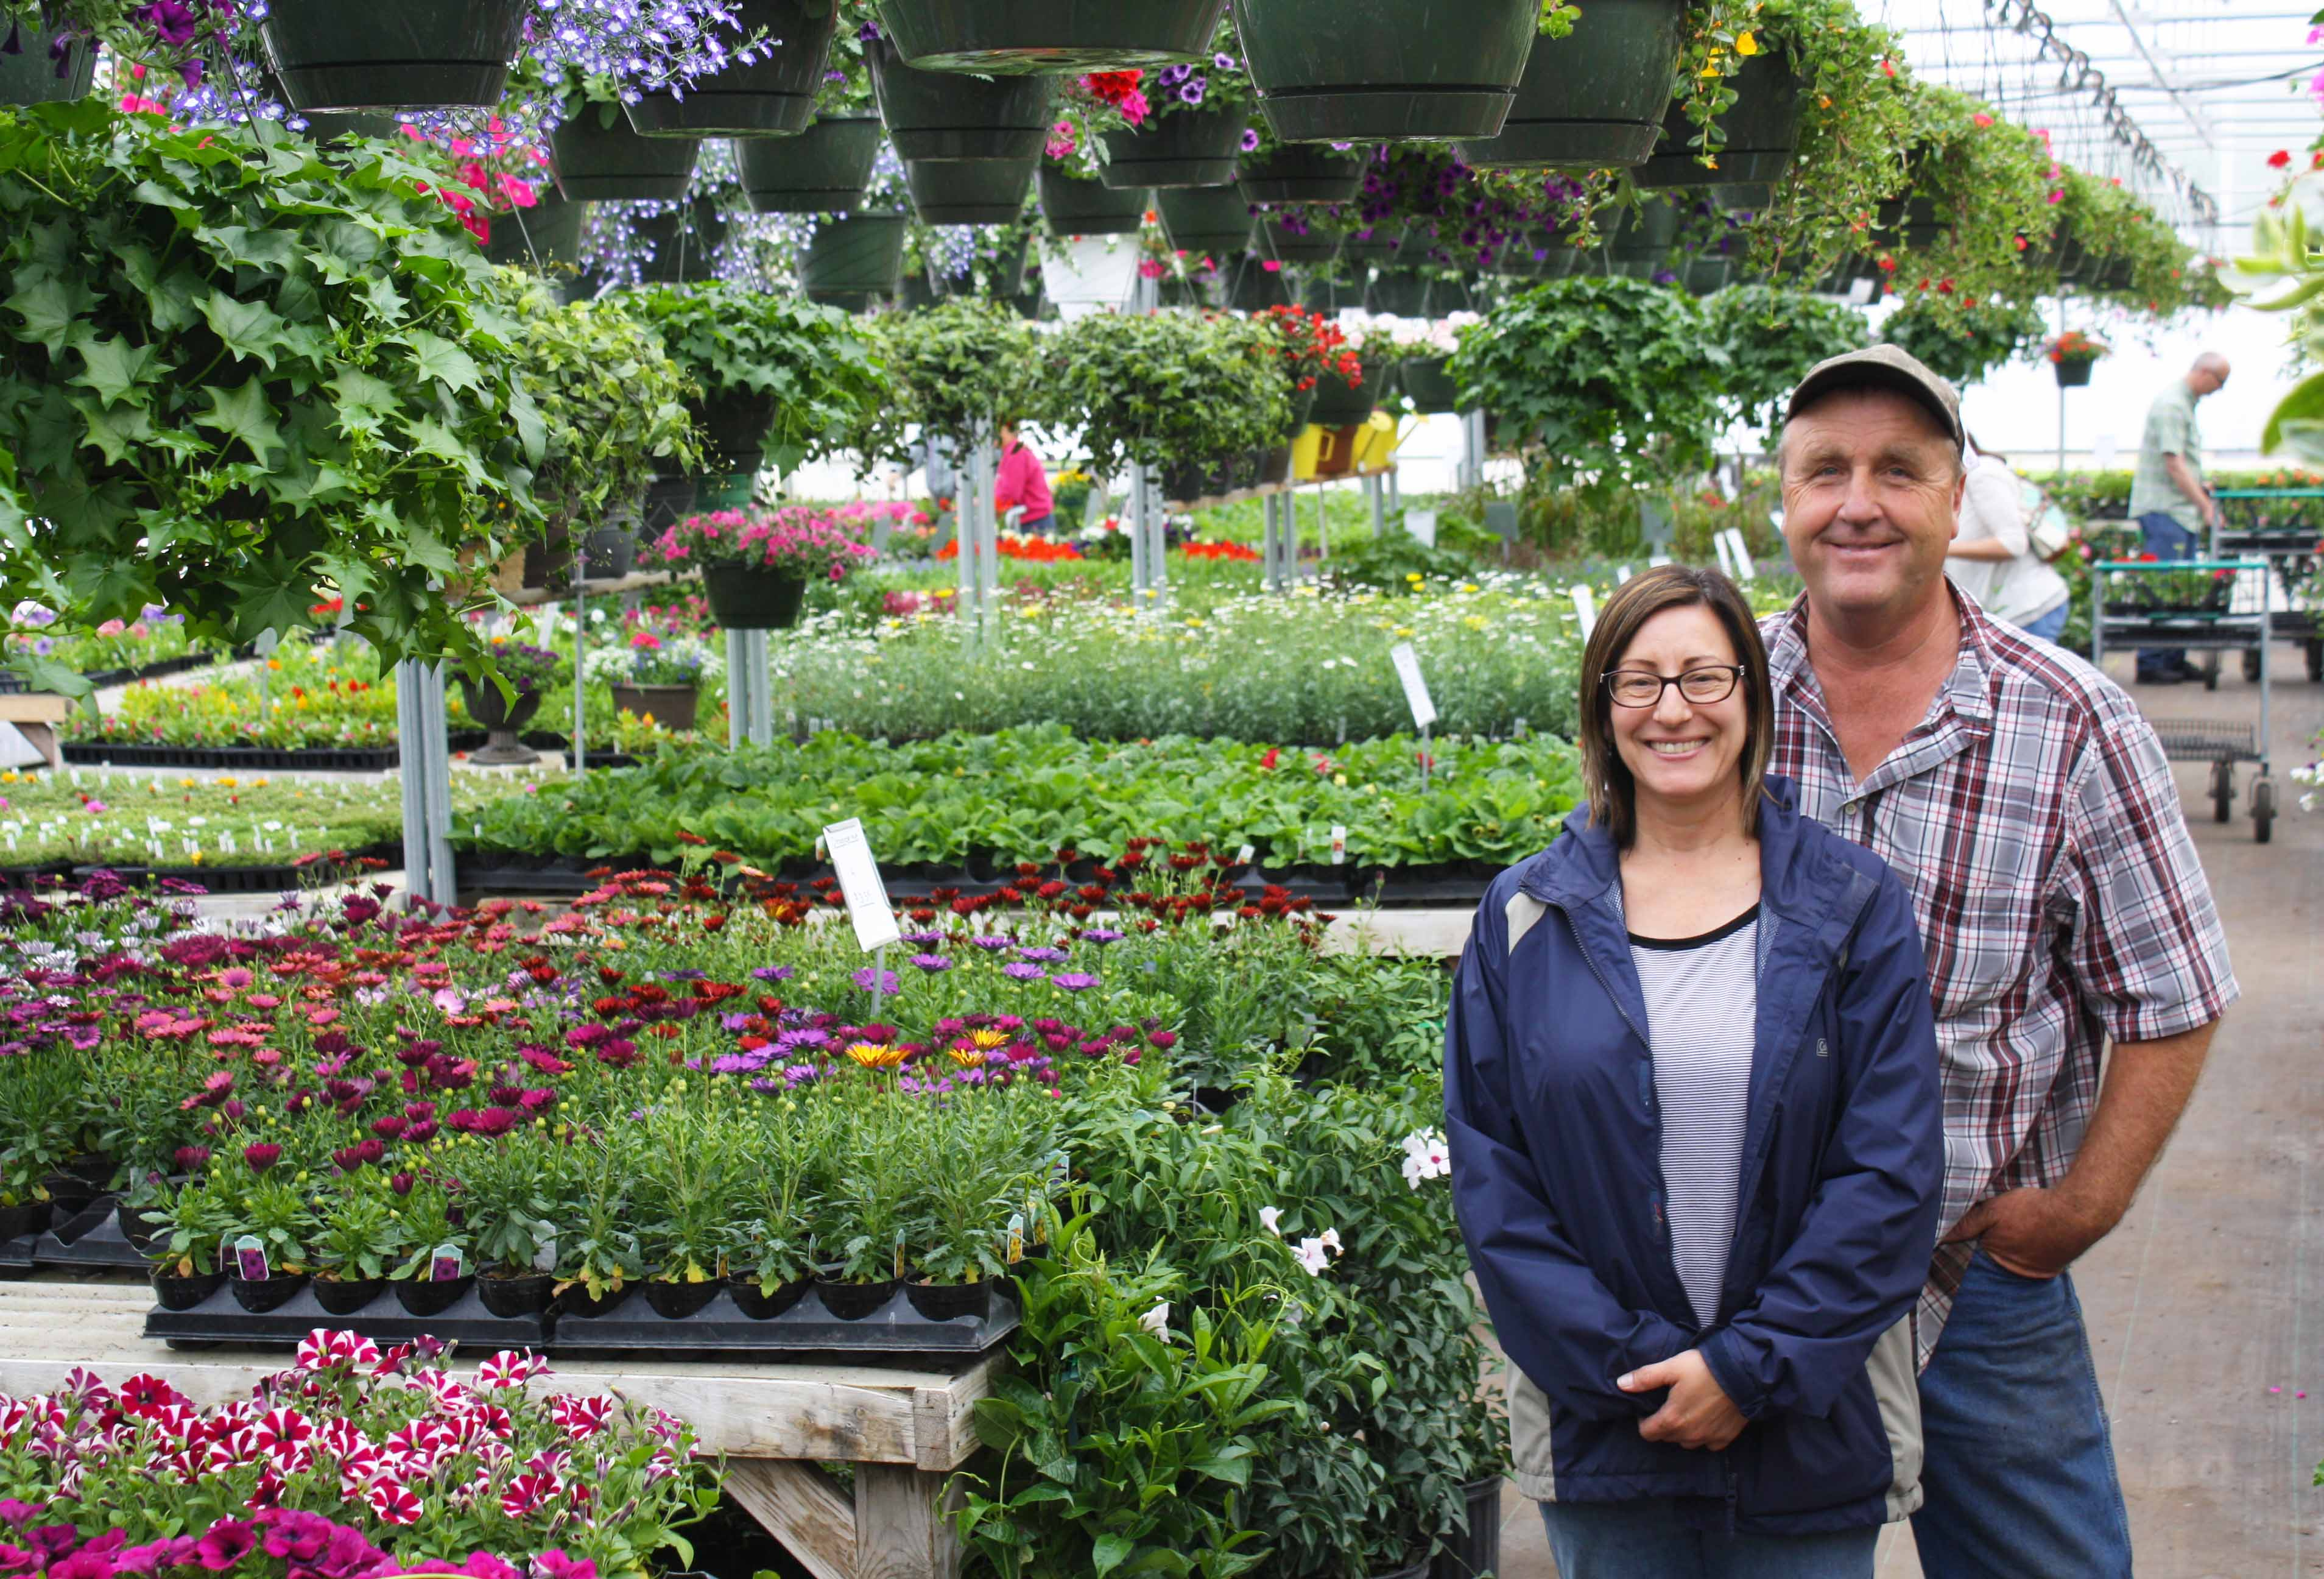 Brenda and Jim Johnston, owners of Harvest Gardens,  said they set down roots quickly in Ellendale, N.D.